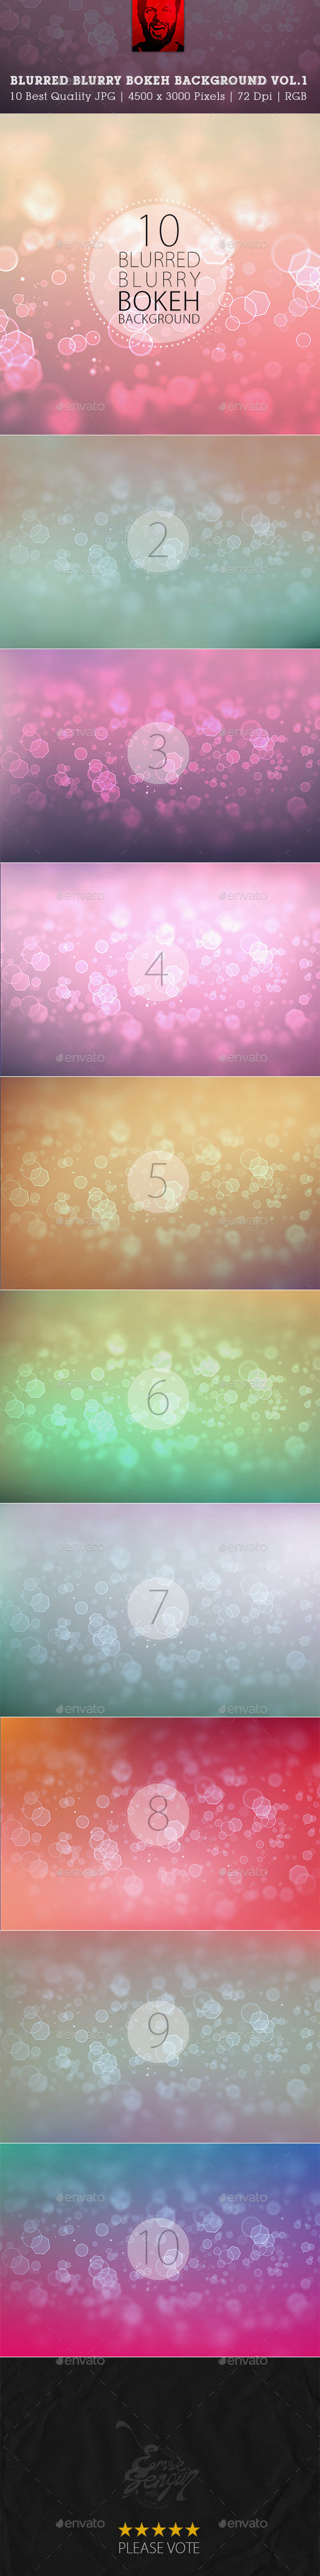 GraphicRiver Blurred Blurry Blur Bokeh Backgrounds Vol.1 9953615